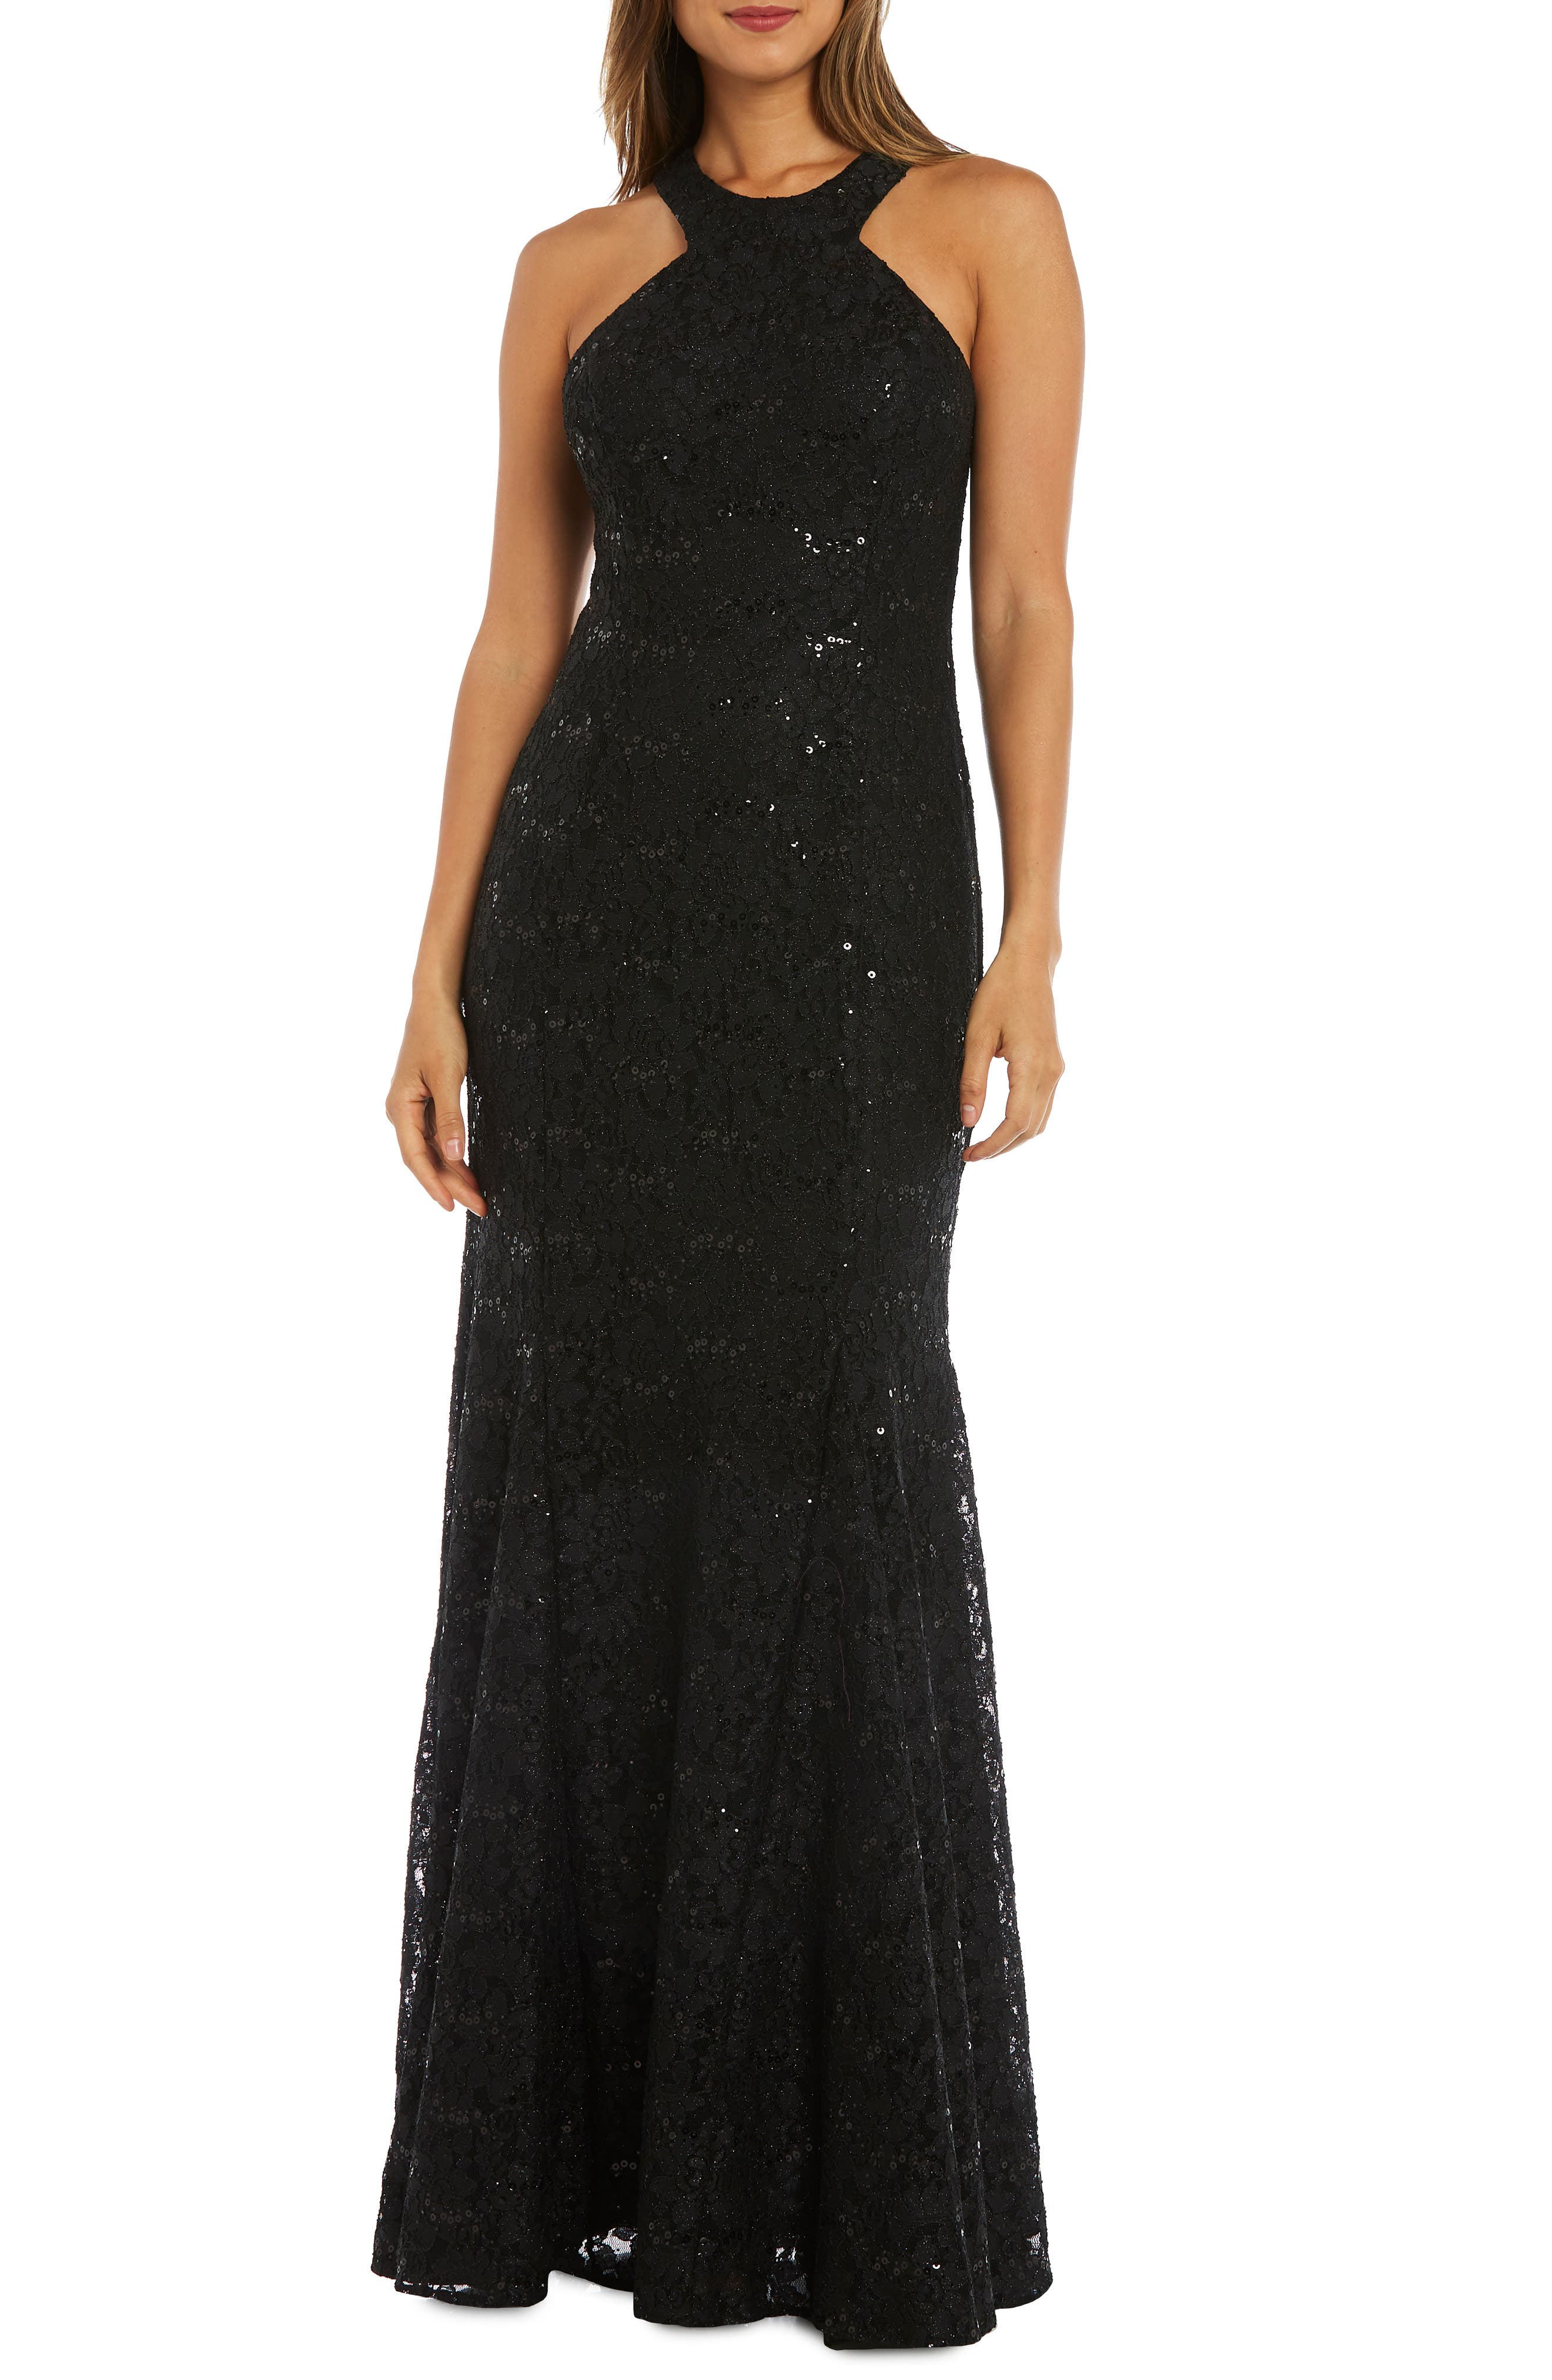 MORGAN & CO. Strappy Back Sequin Lace Gown, Main, color, BLACK